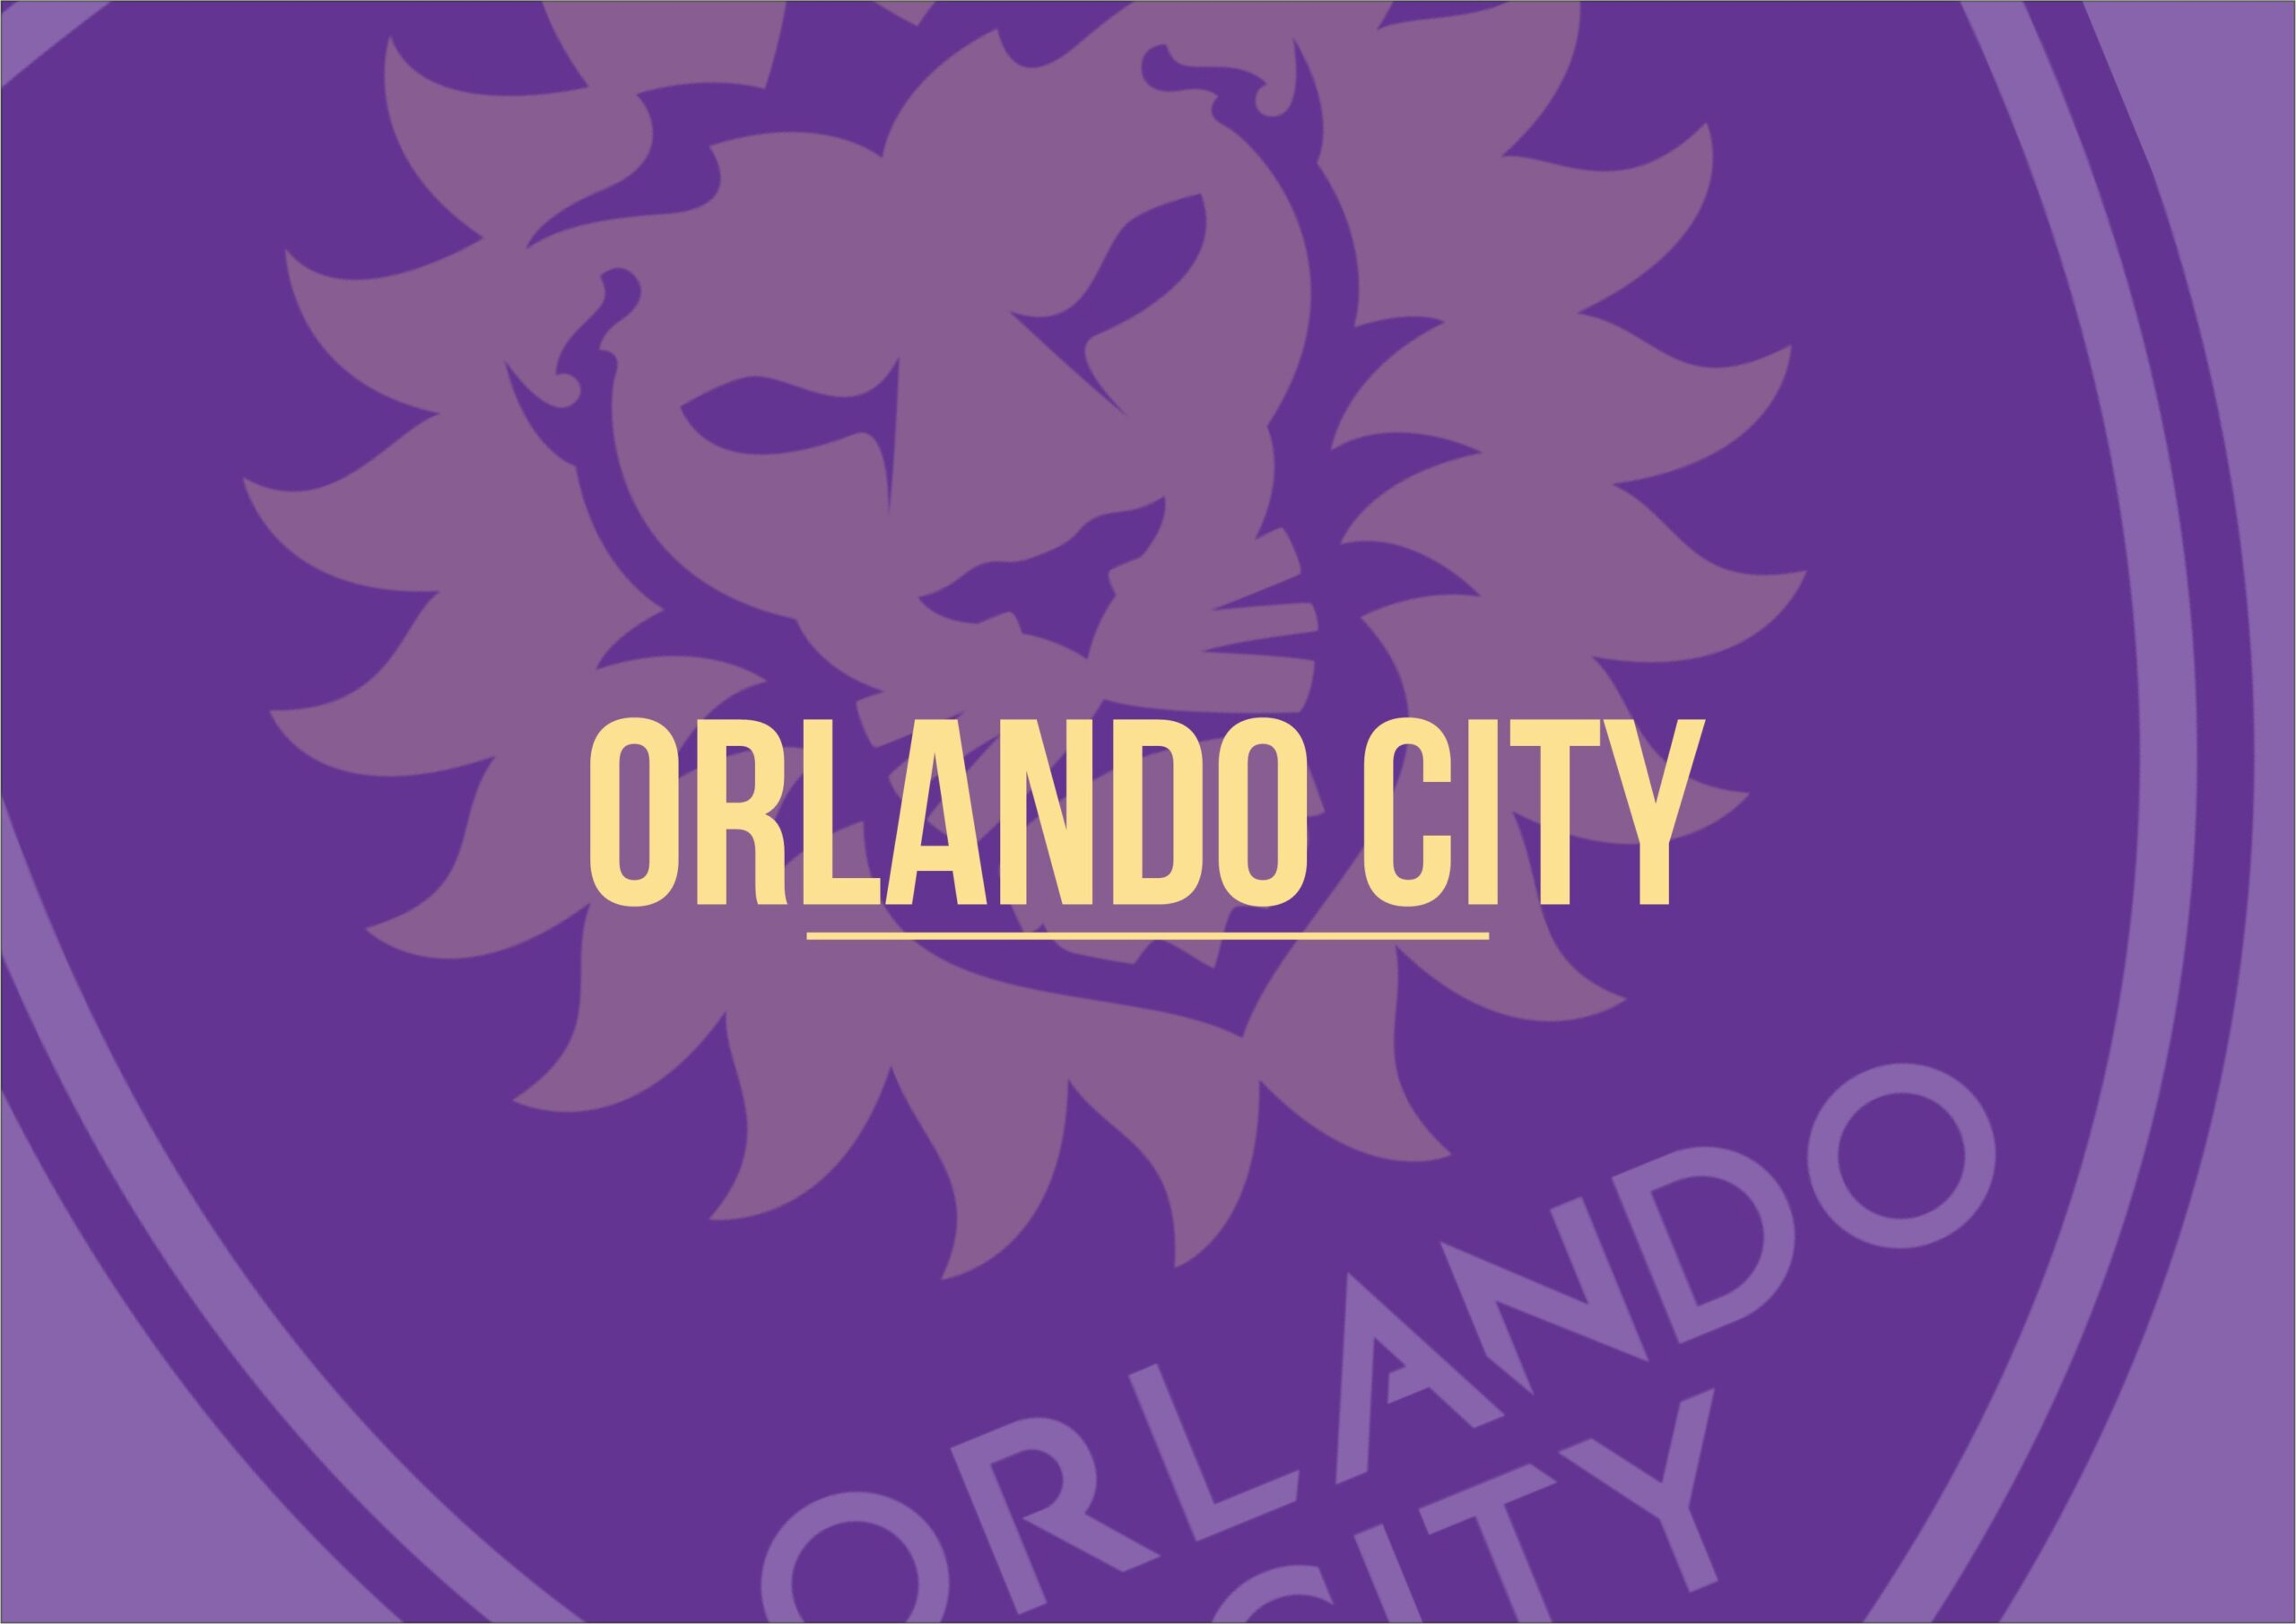 Orlando City | MLS Magazine Italia